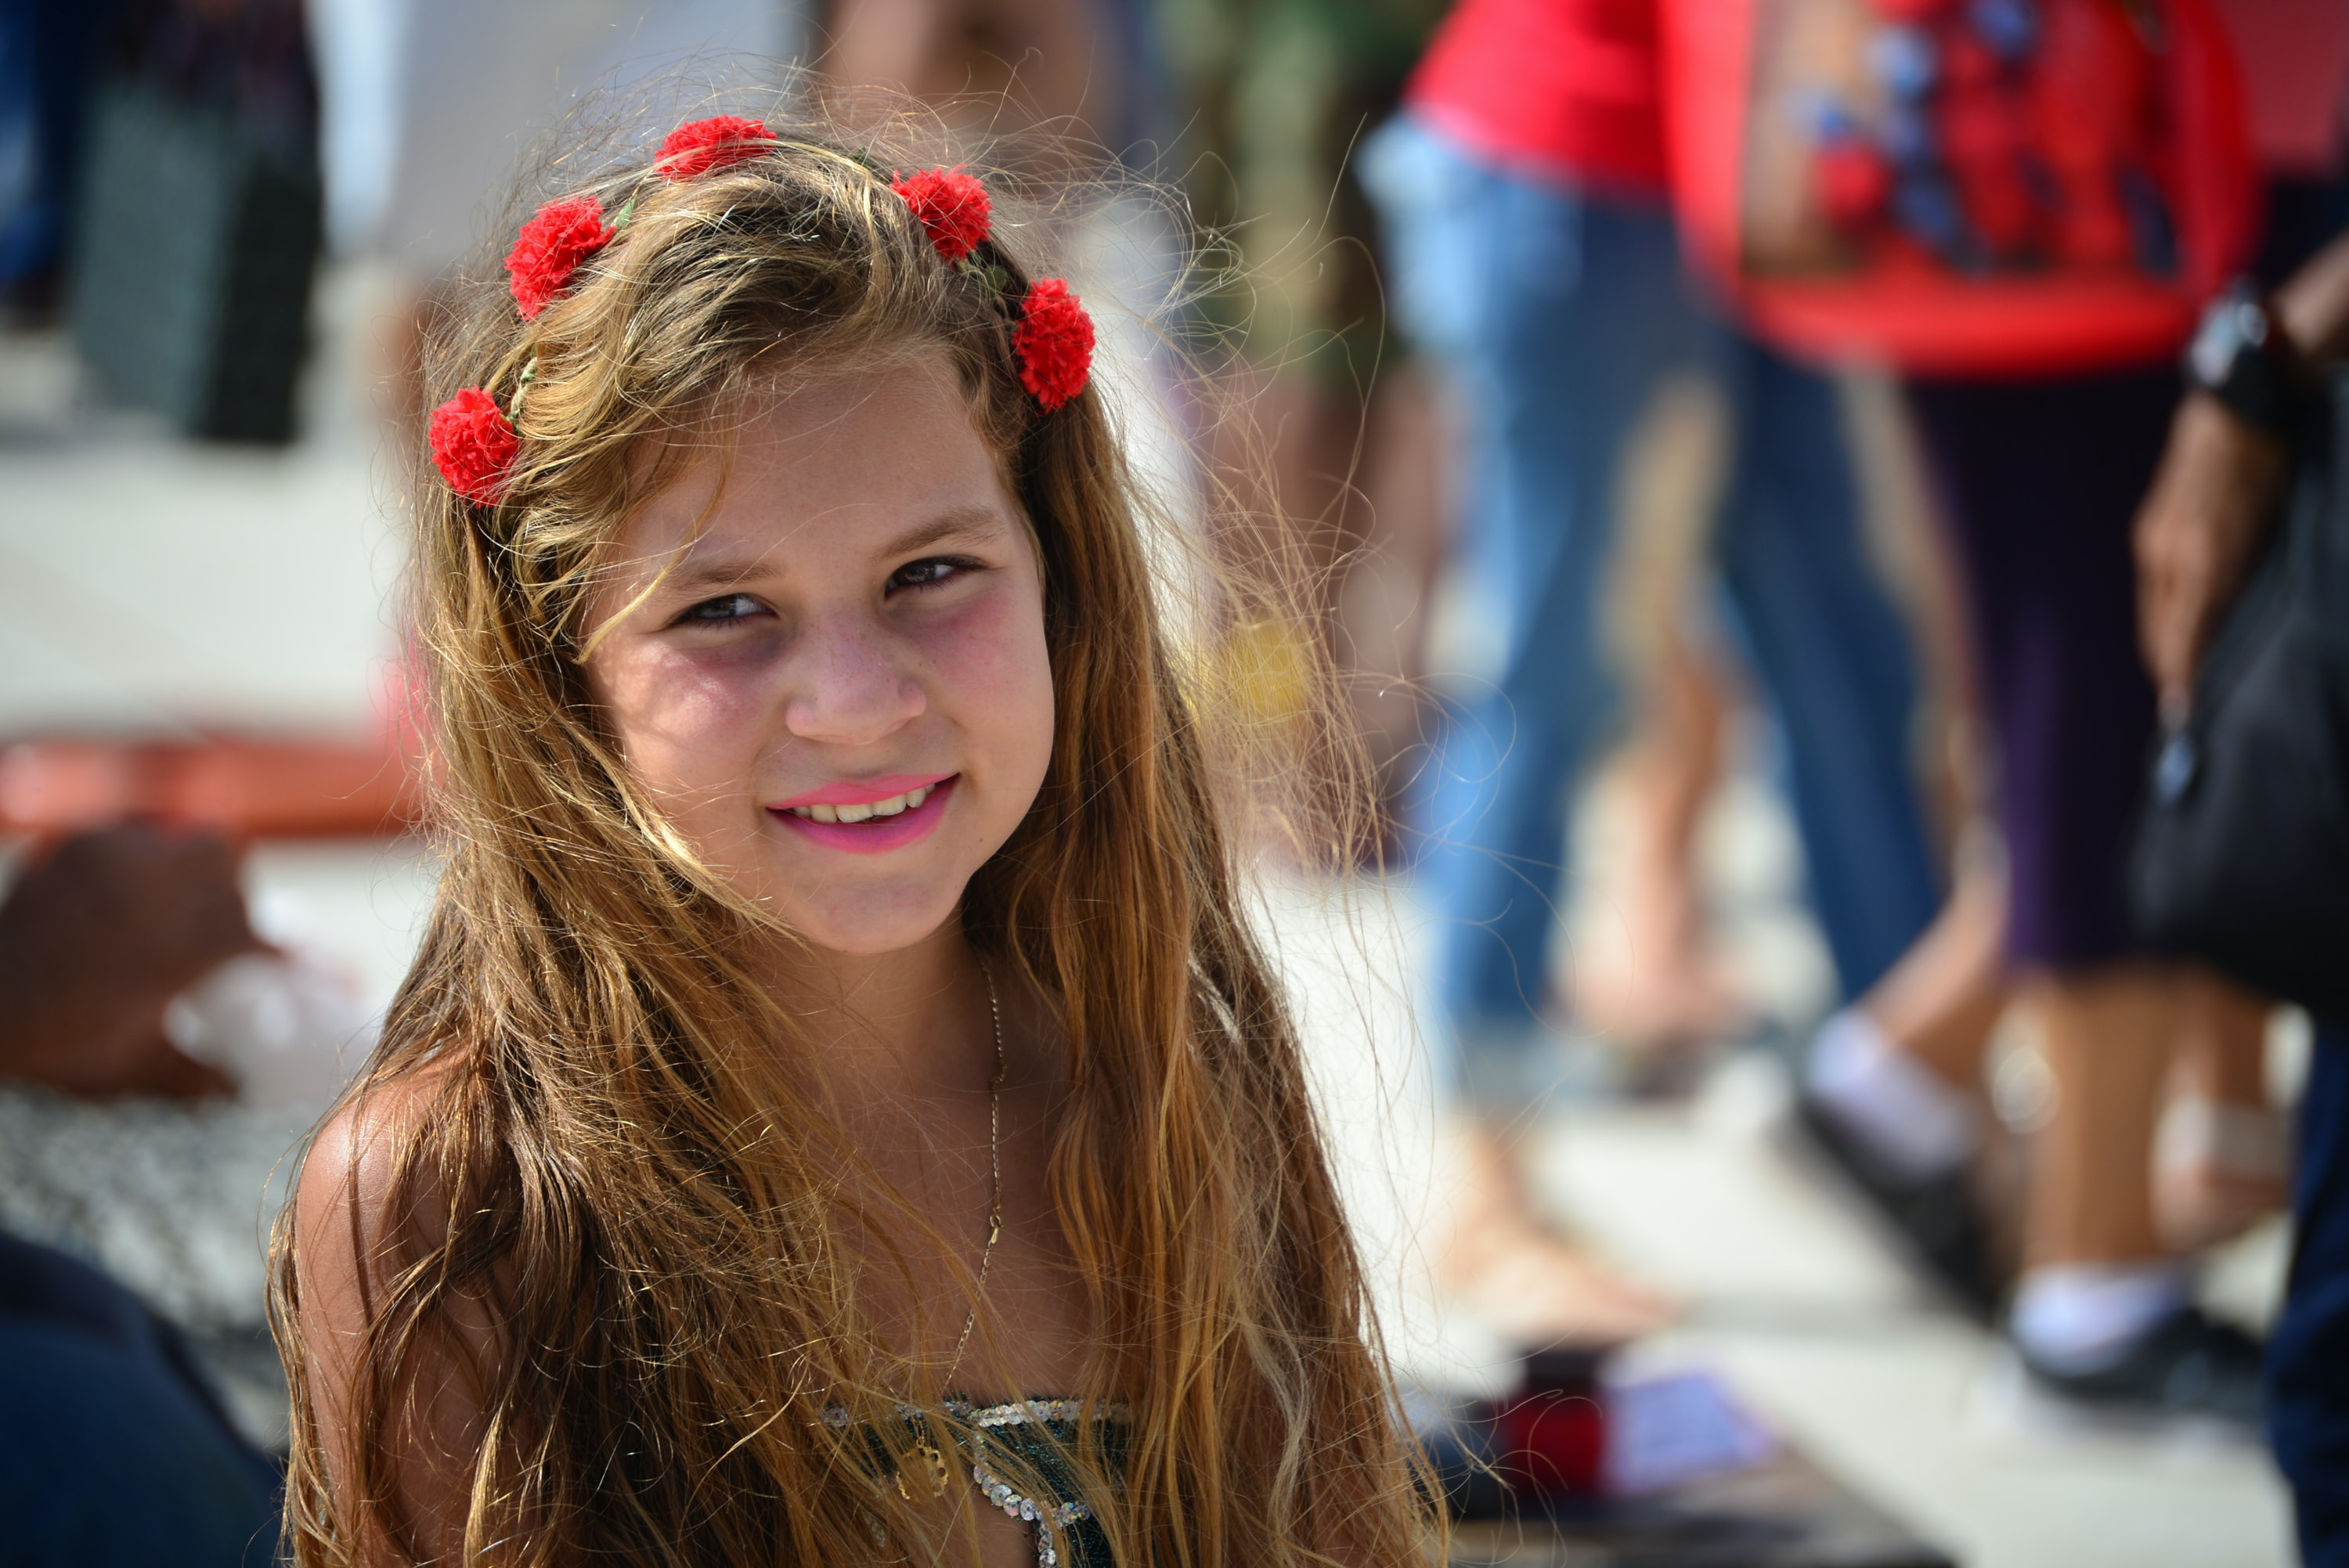 smiling girl with red flower headdress